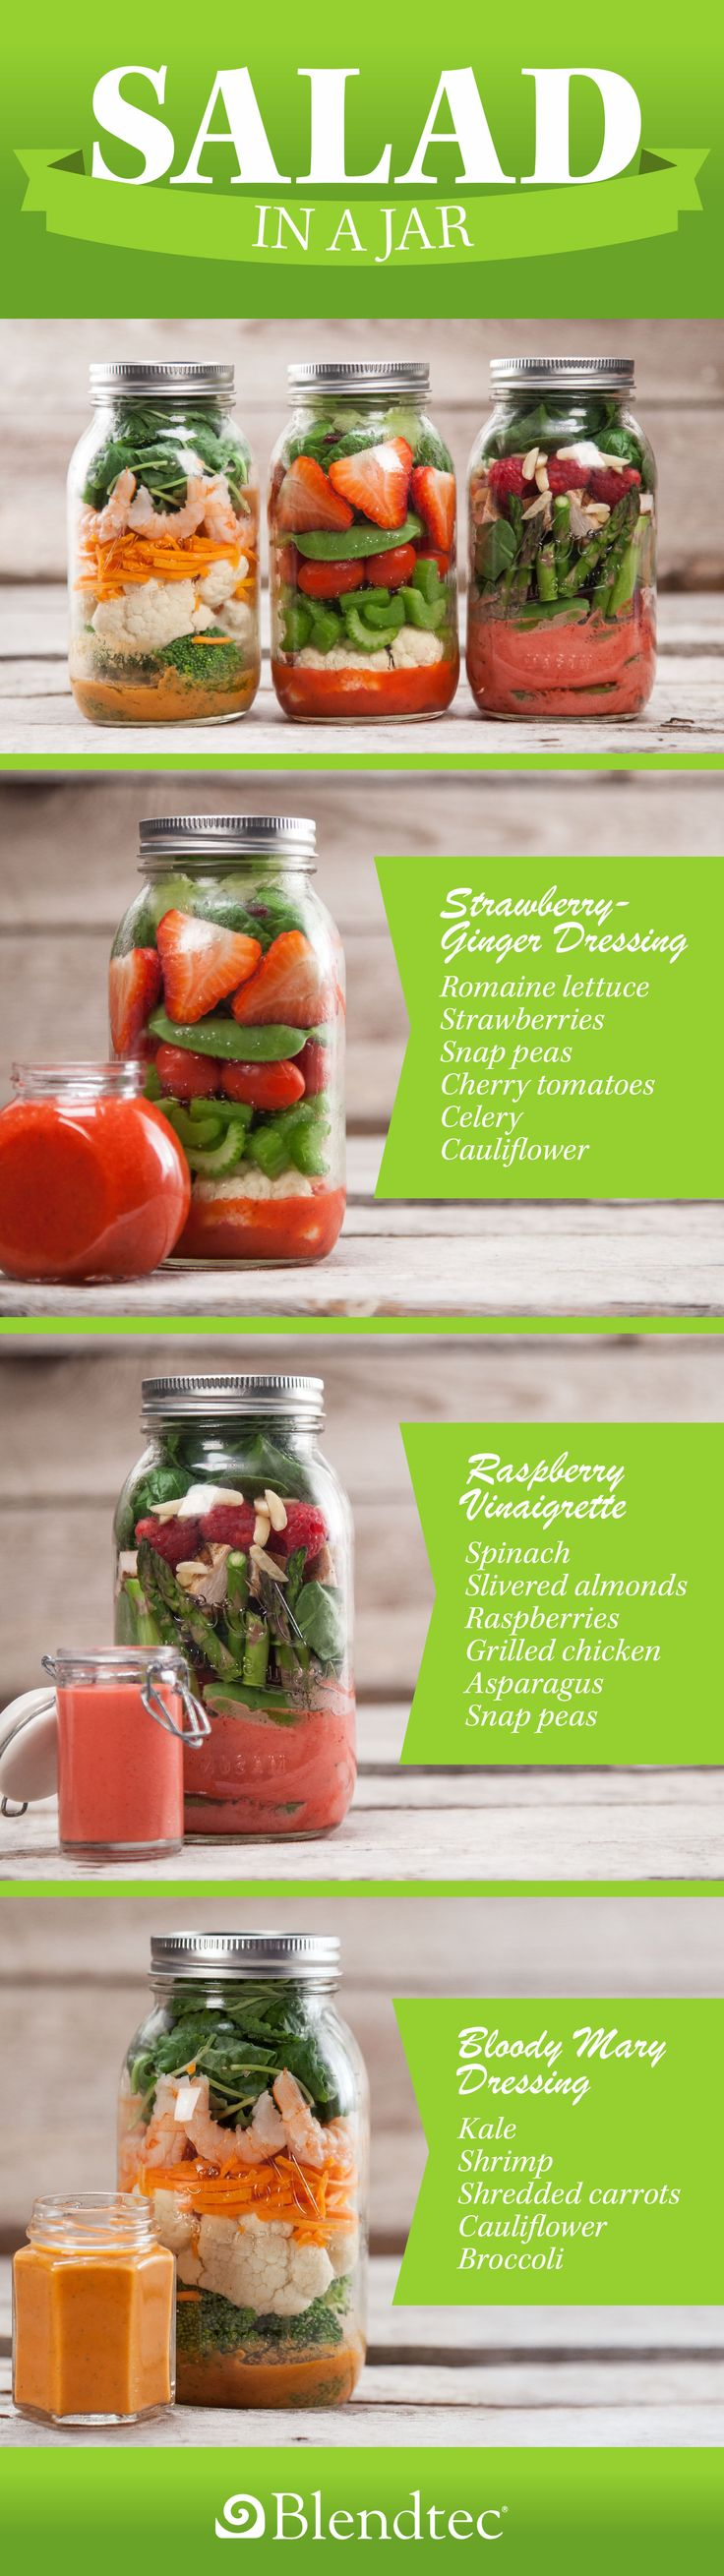 Salad in a Jar Recipes [Bloody Mary Dressing, Strawberry-Ginger Dressing, Raspberry Vinaigrette] #lunch #recipe #meal #recipes #snack